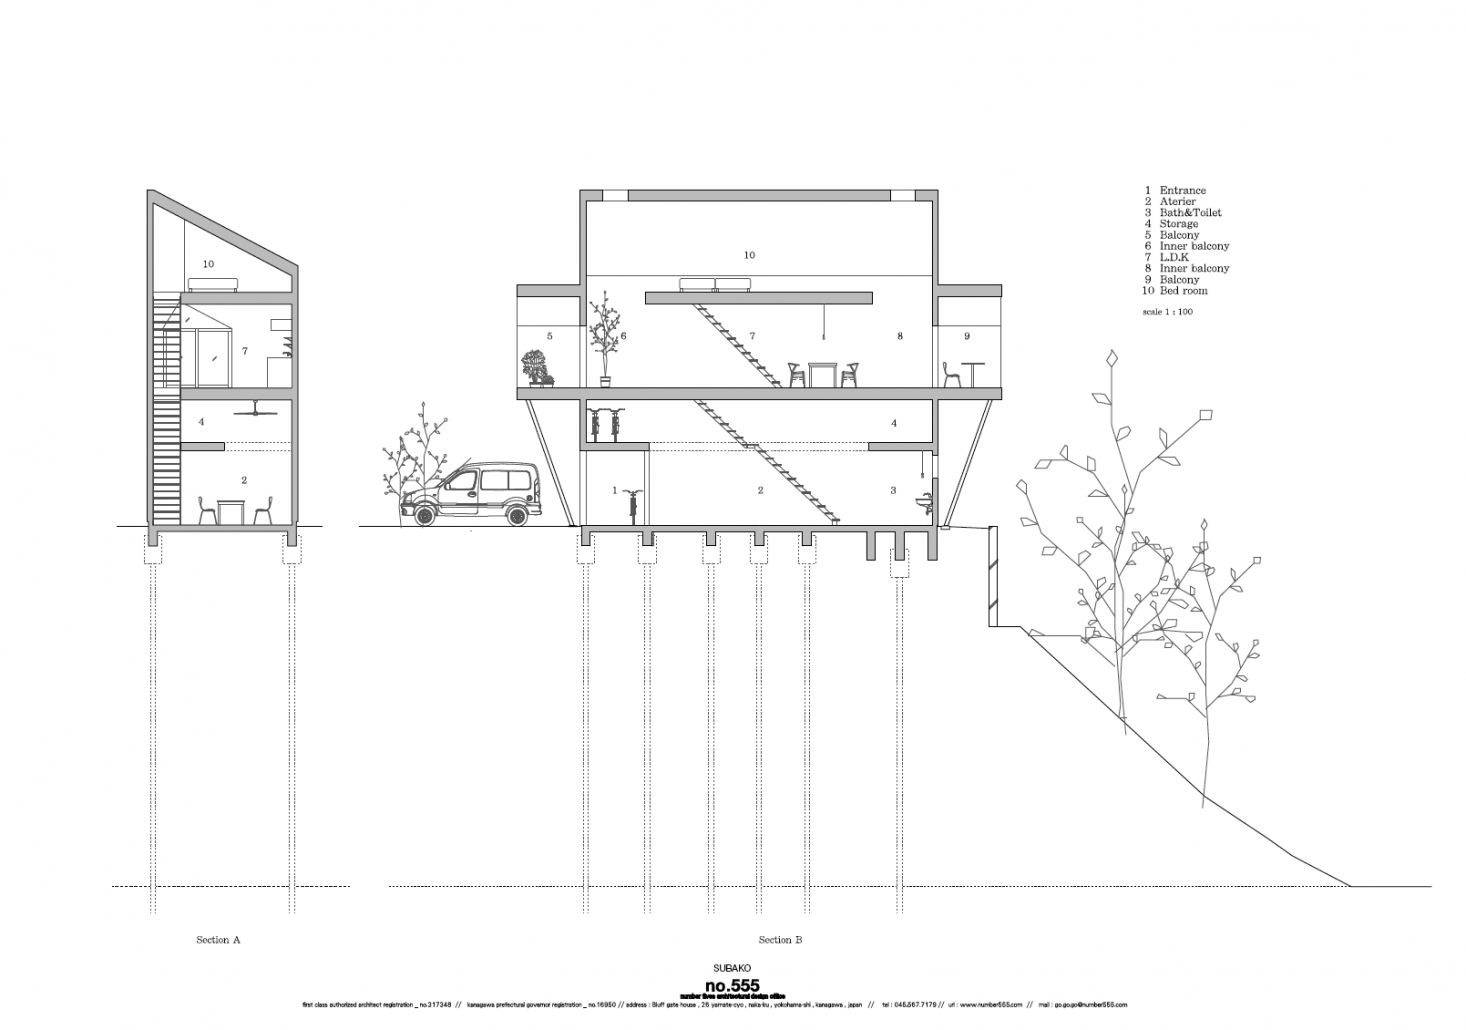 No. 555's cross-section of the design details the loft spaces over each of the floors.